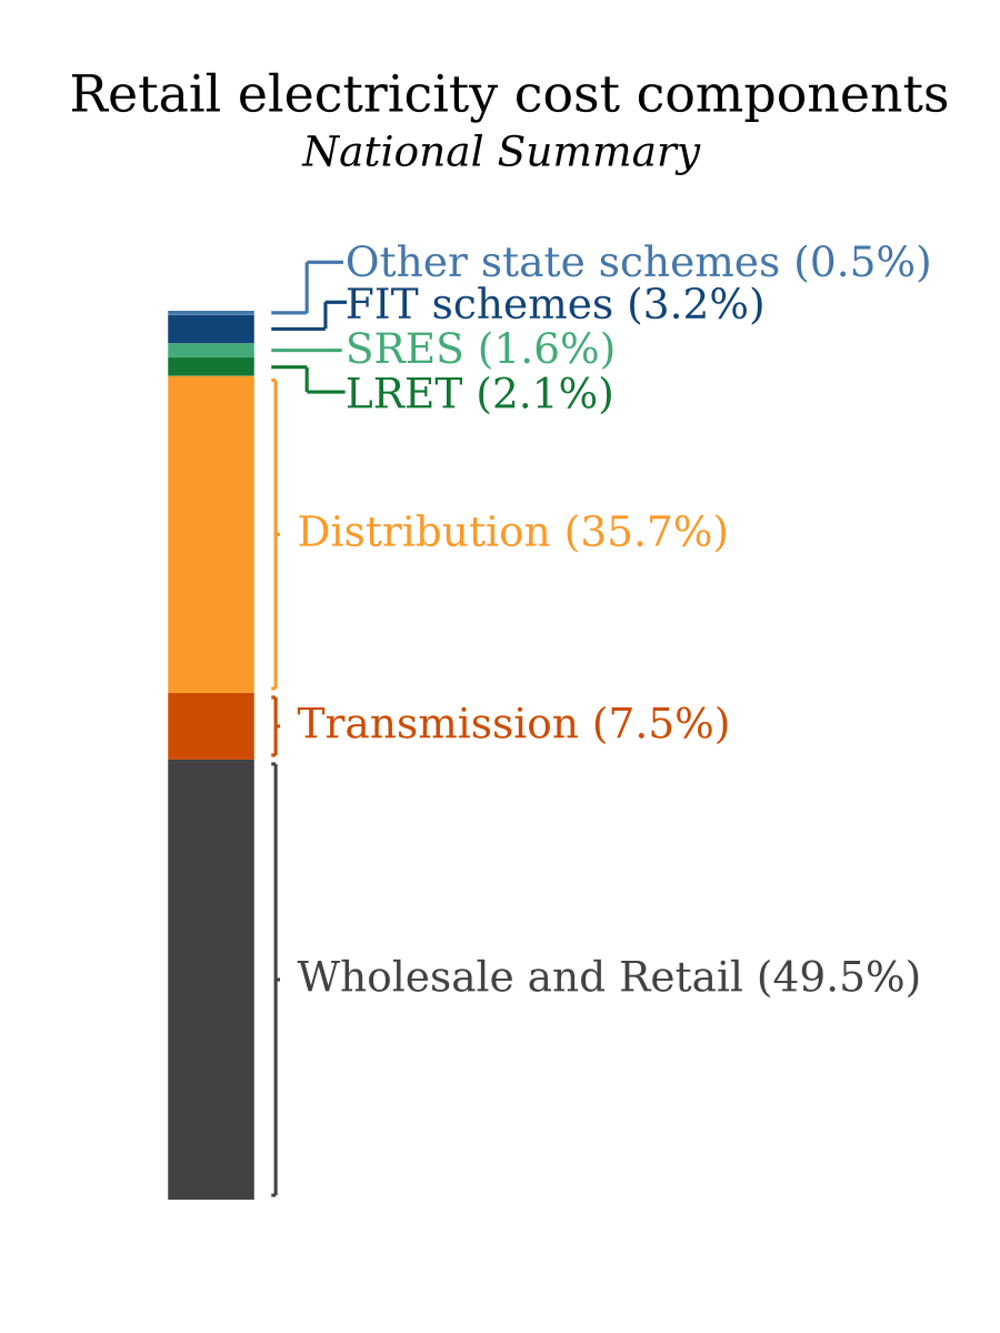 Carbon Taxes Emissions Trading And Electricity Prices Making Sense Residential Wiring Parallel Or Series National Summary Of Retail Cost Components 2015 Price Trends